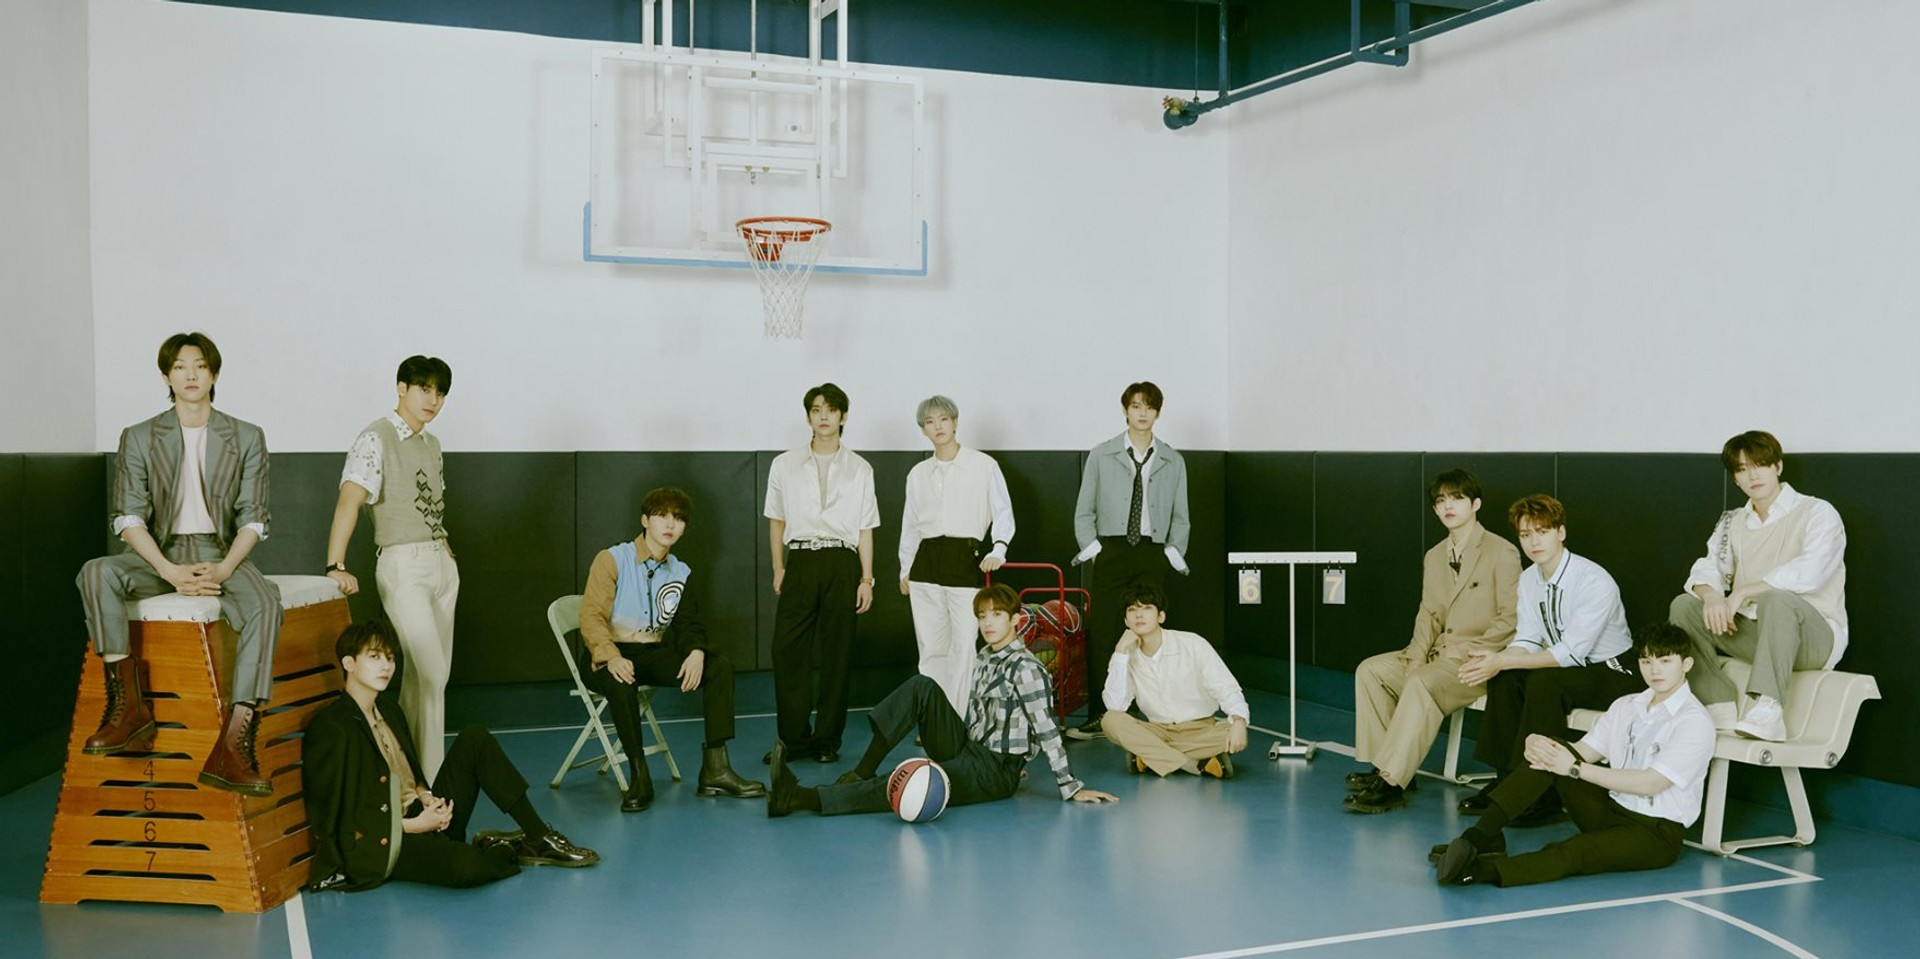 SEVENTEEN will make their comeback in October with a new album, here's how to preorder